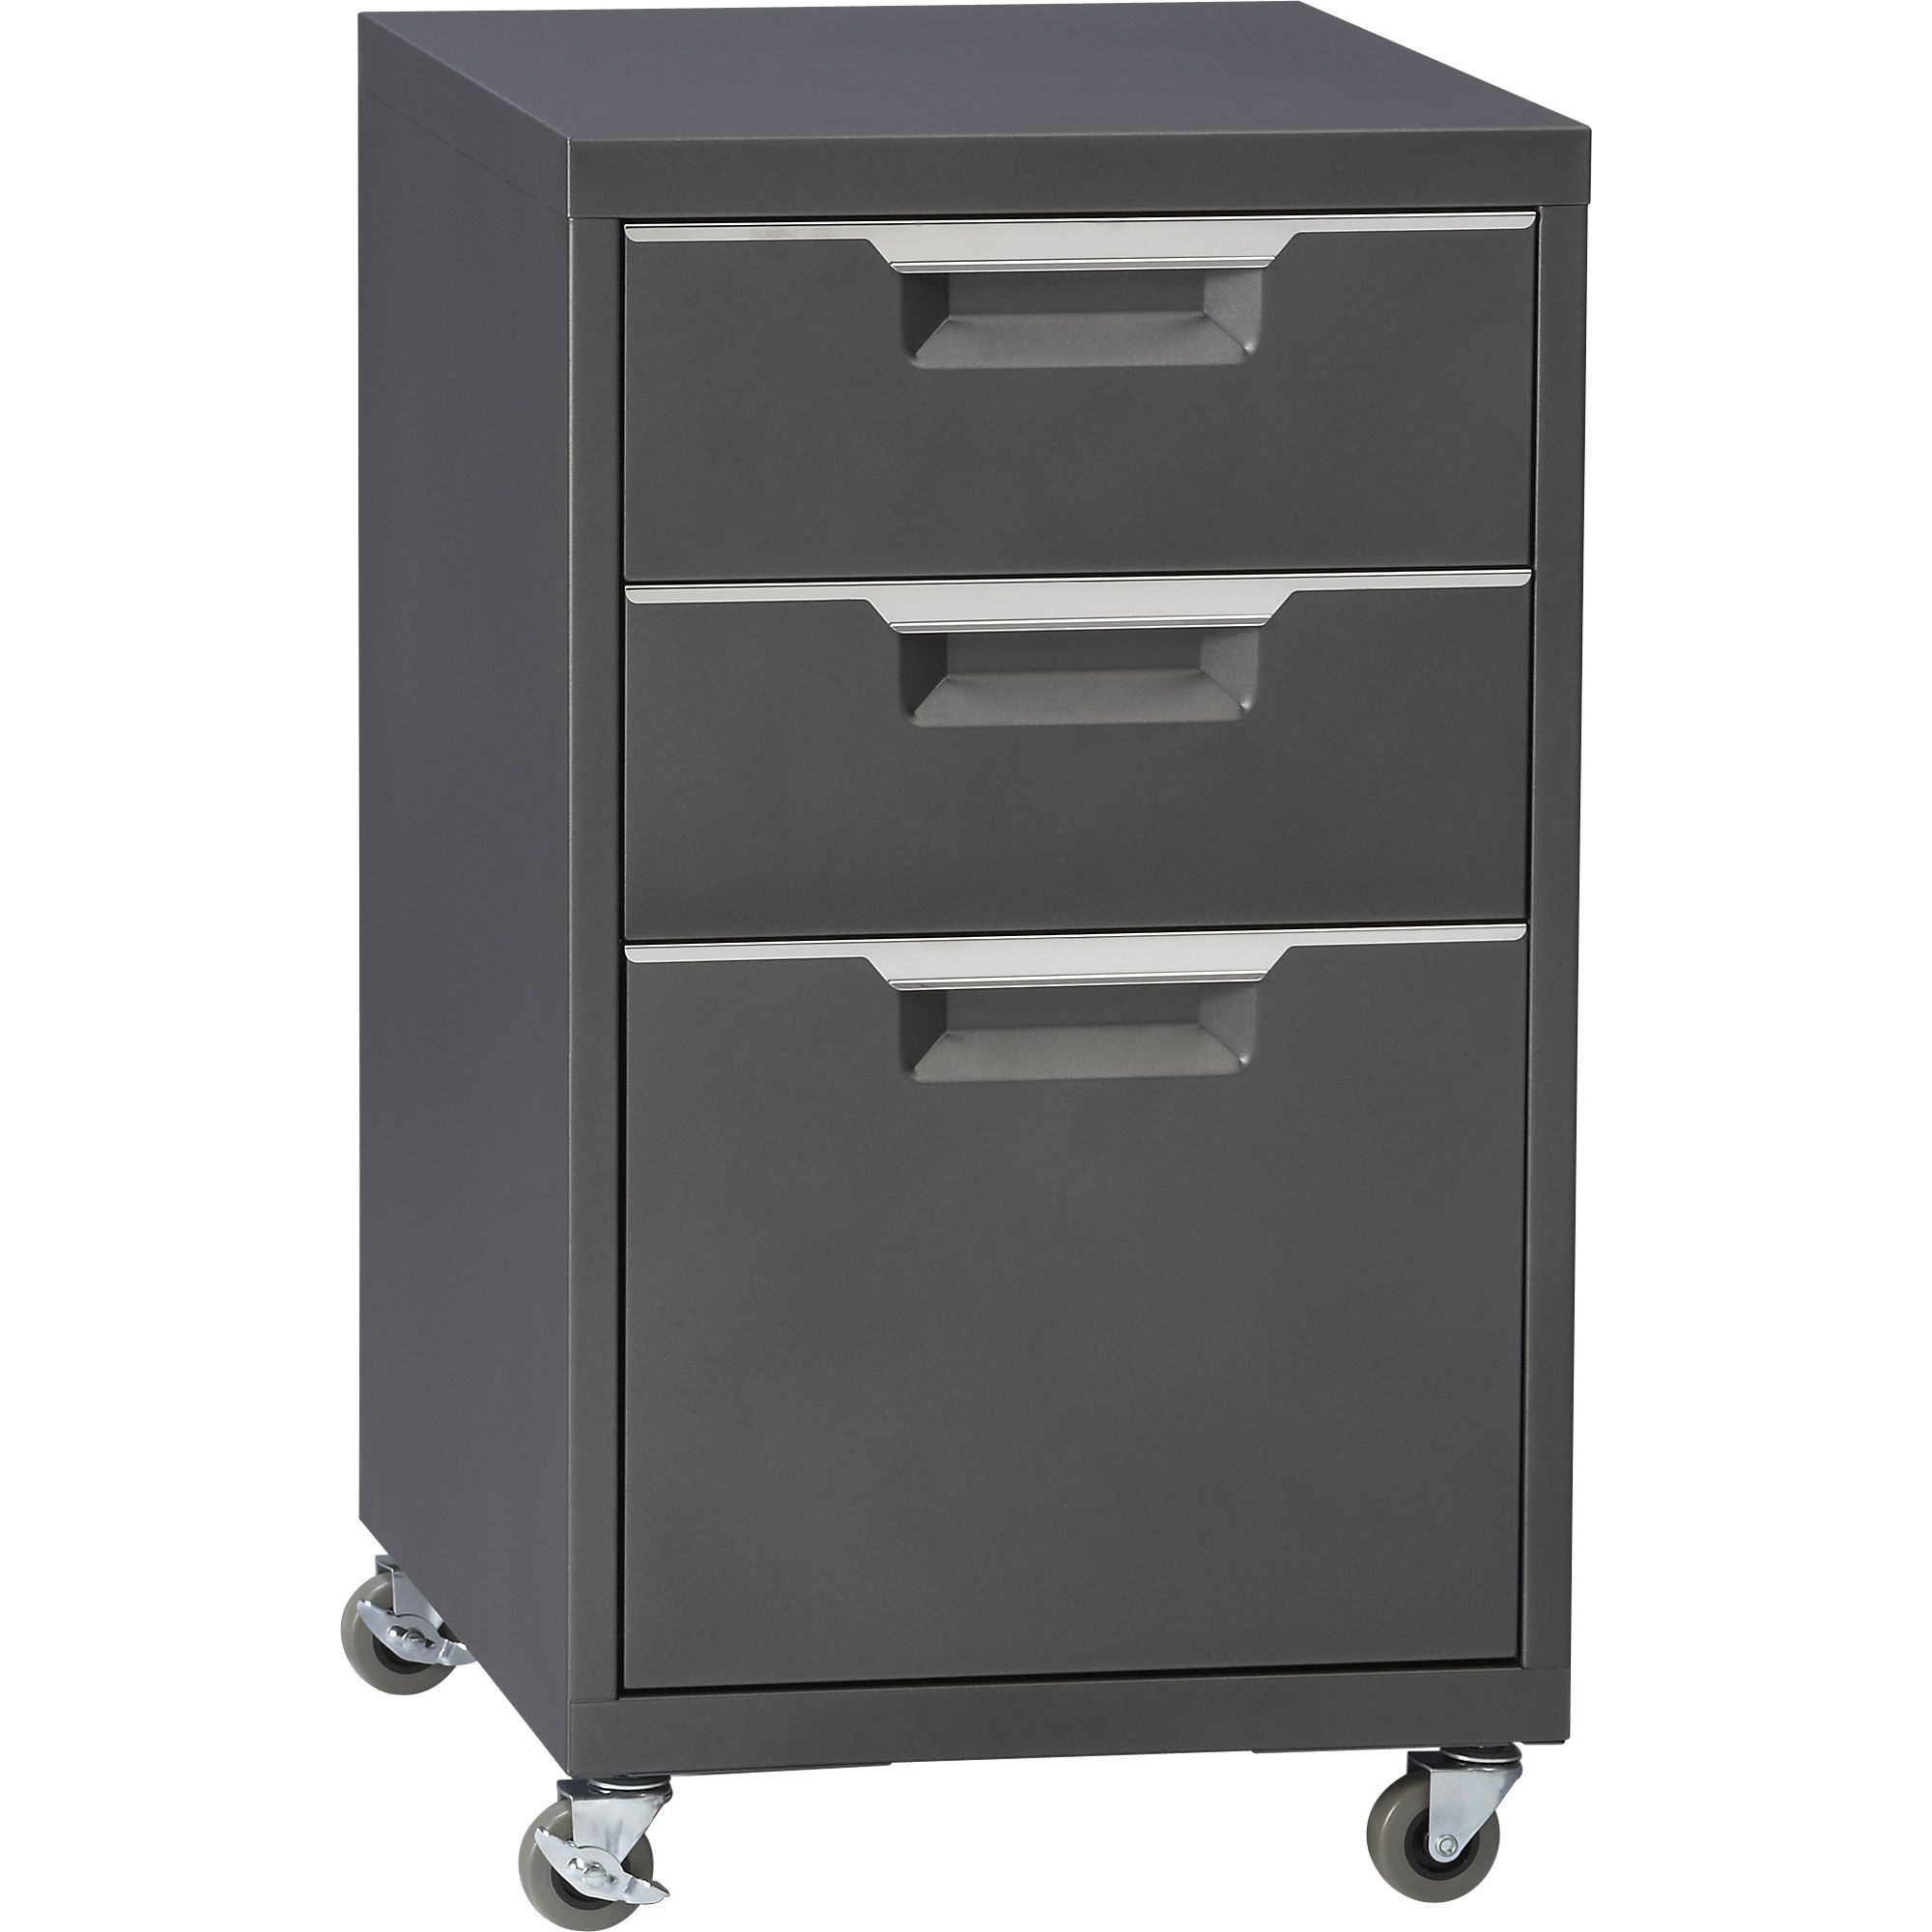 filing cabinets product and vertical drawers imageshow details cabinet lateral